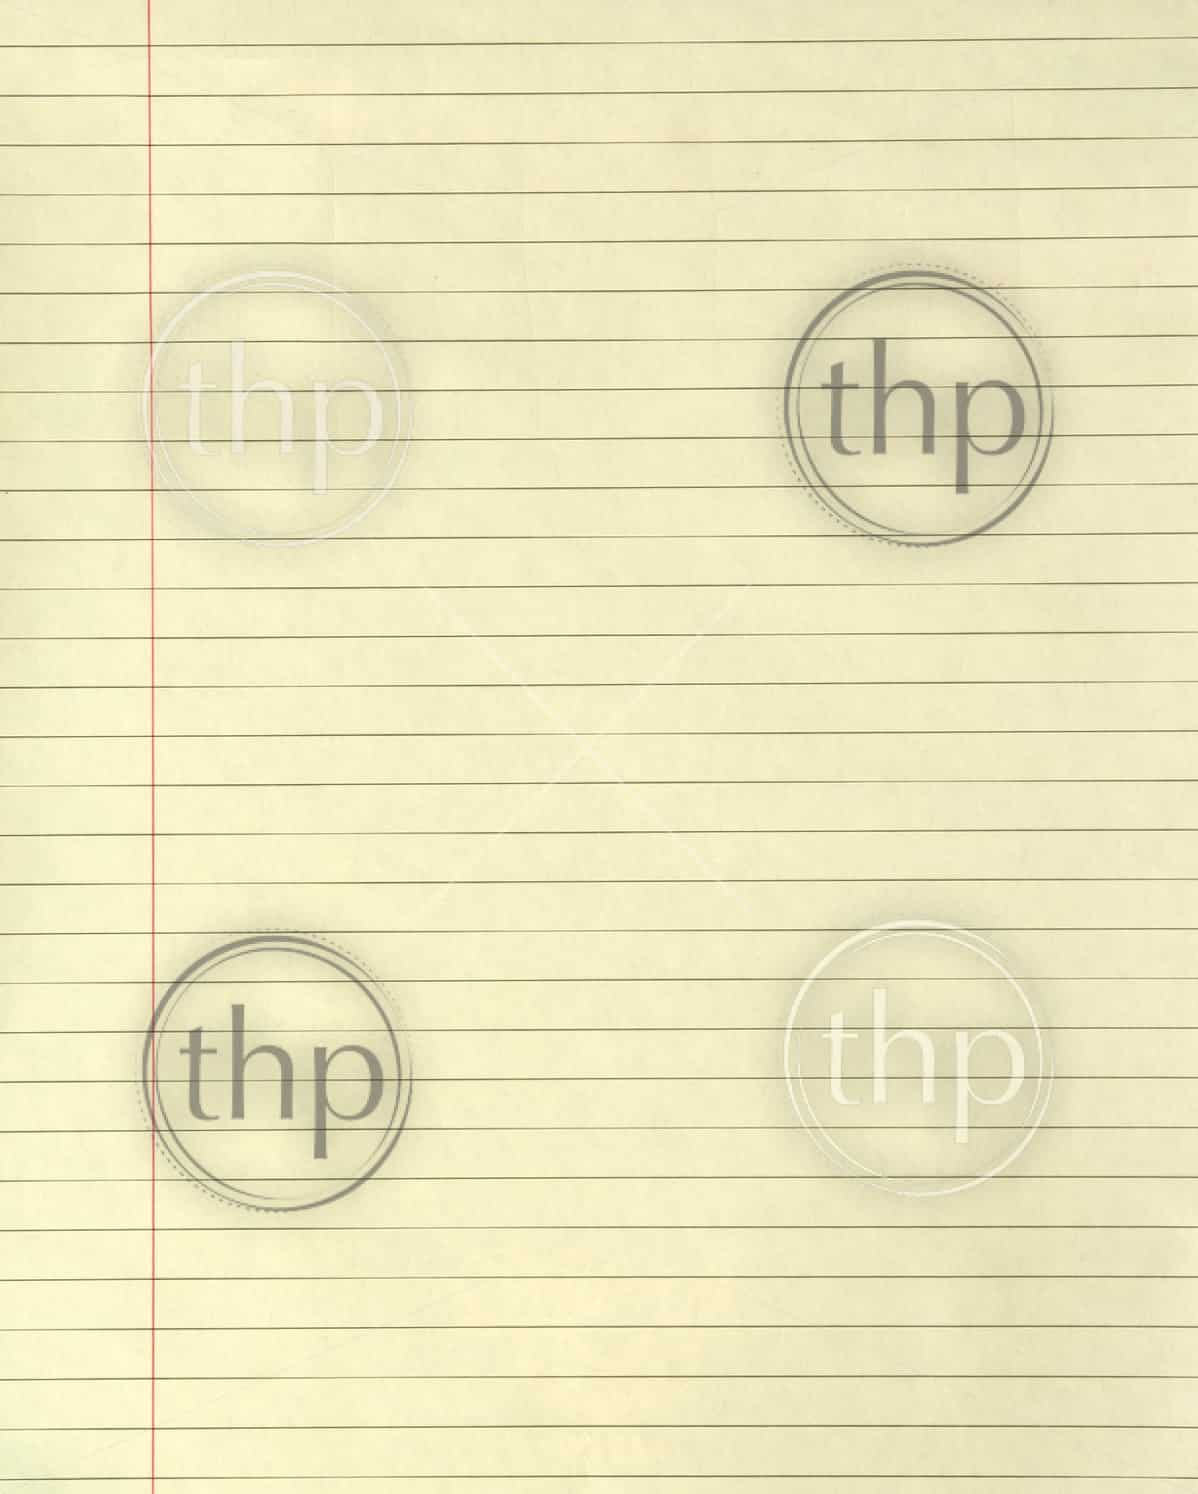 Yellow lined paper with a margin running down it